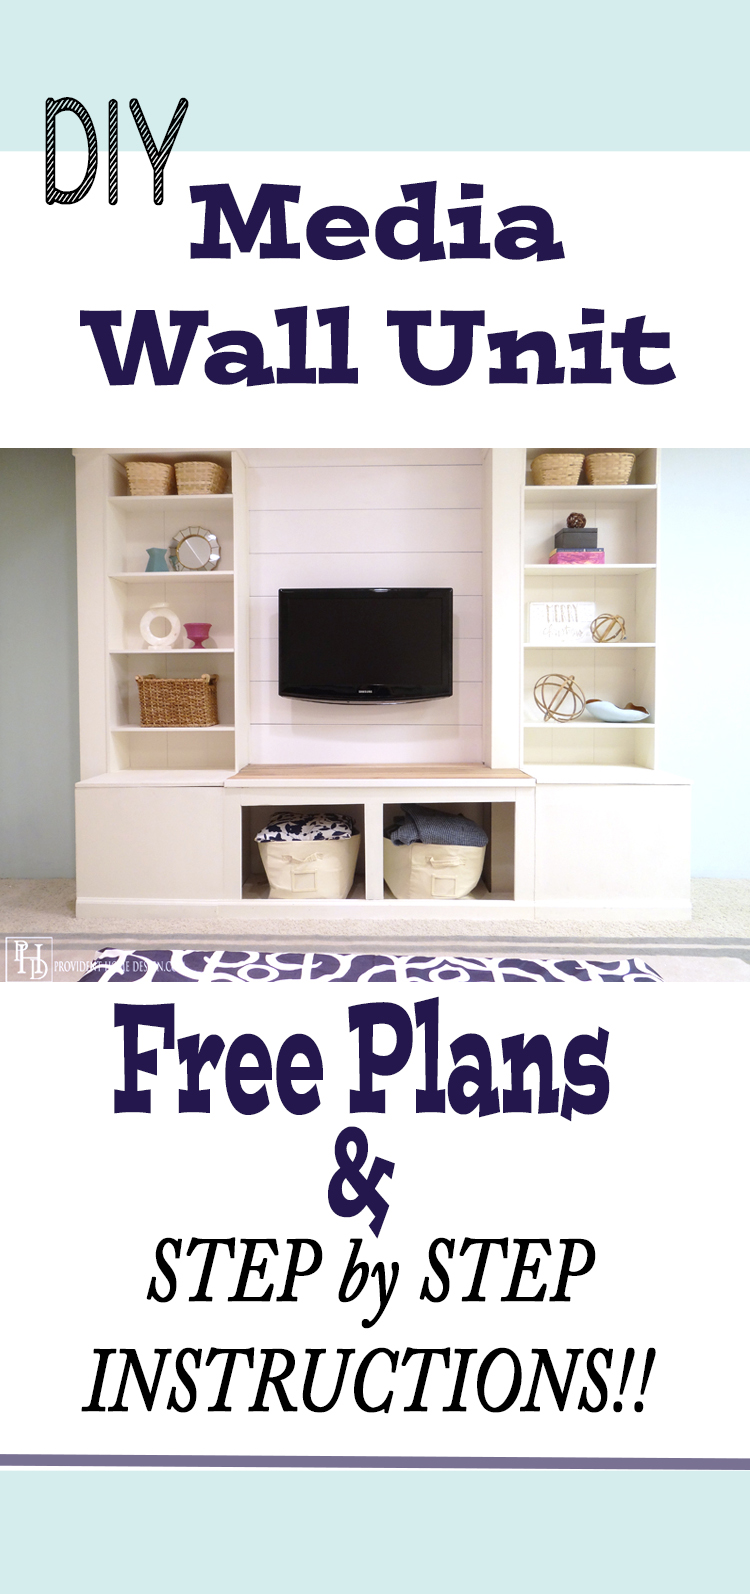 https://providenthomedesign.com/wp-content/uploads/2016/04/How-to-Build-a-Media-Wall-Unit-with-Storage.jpg